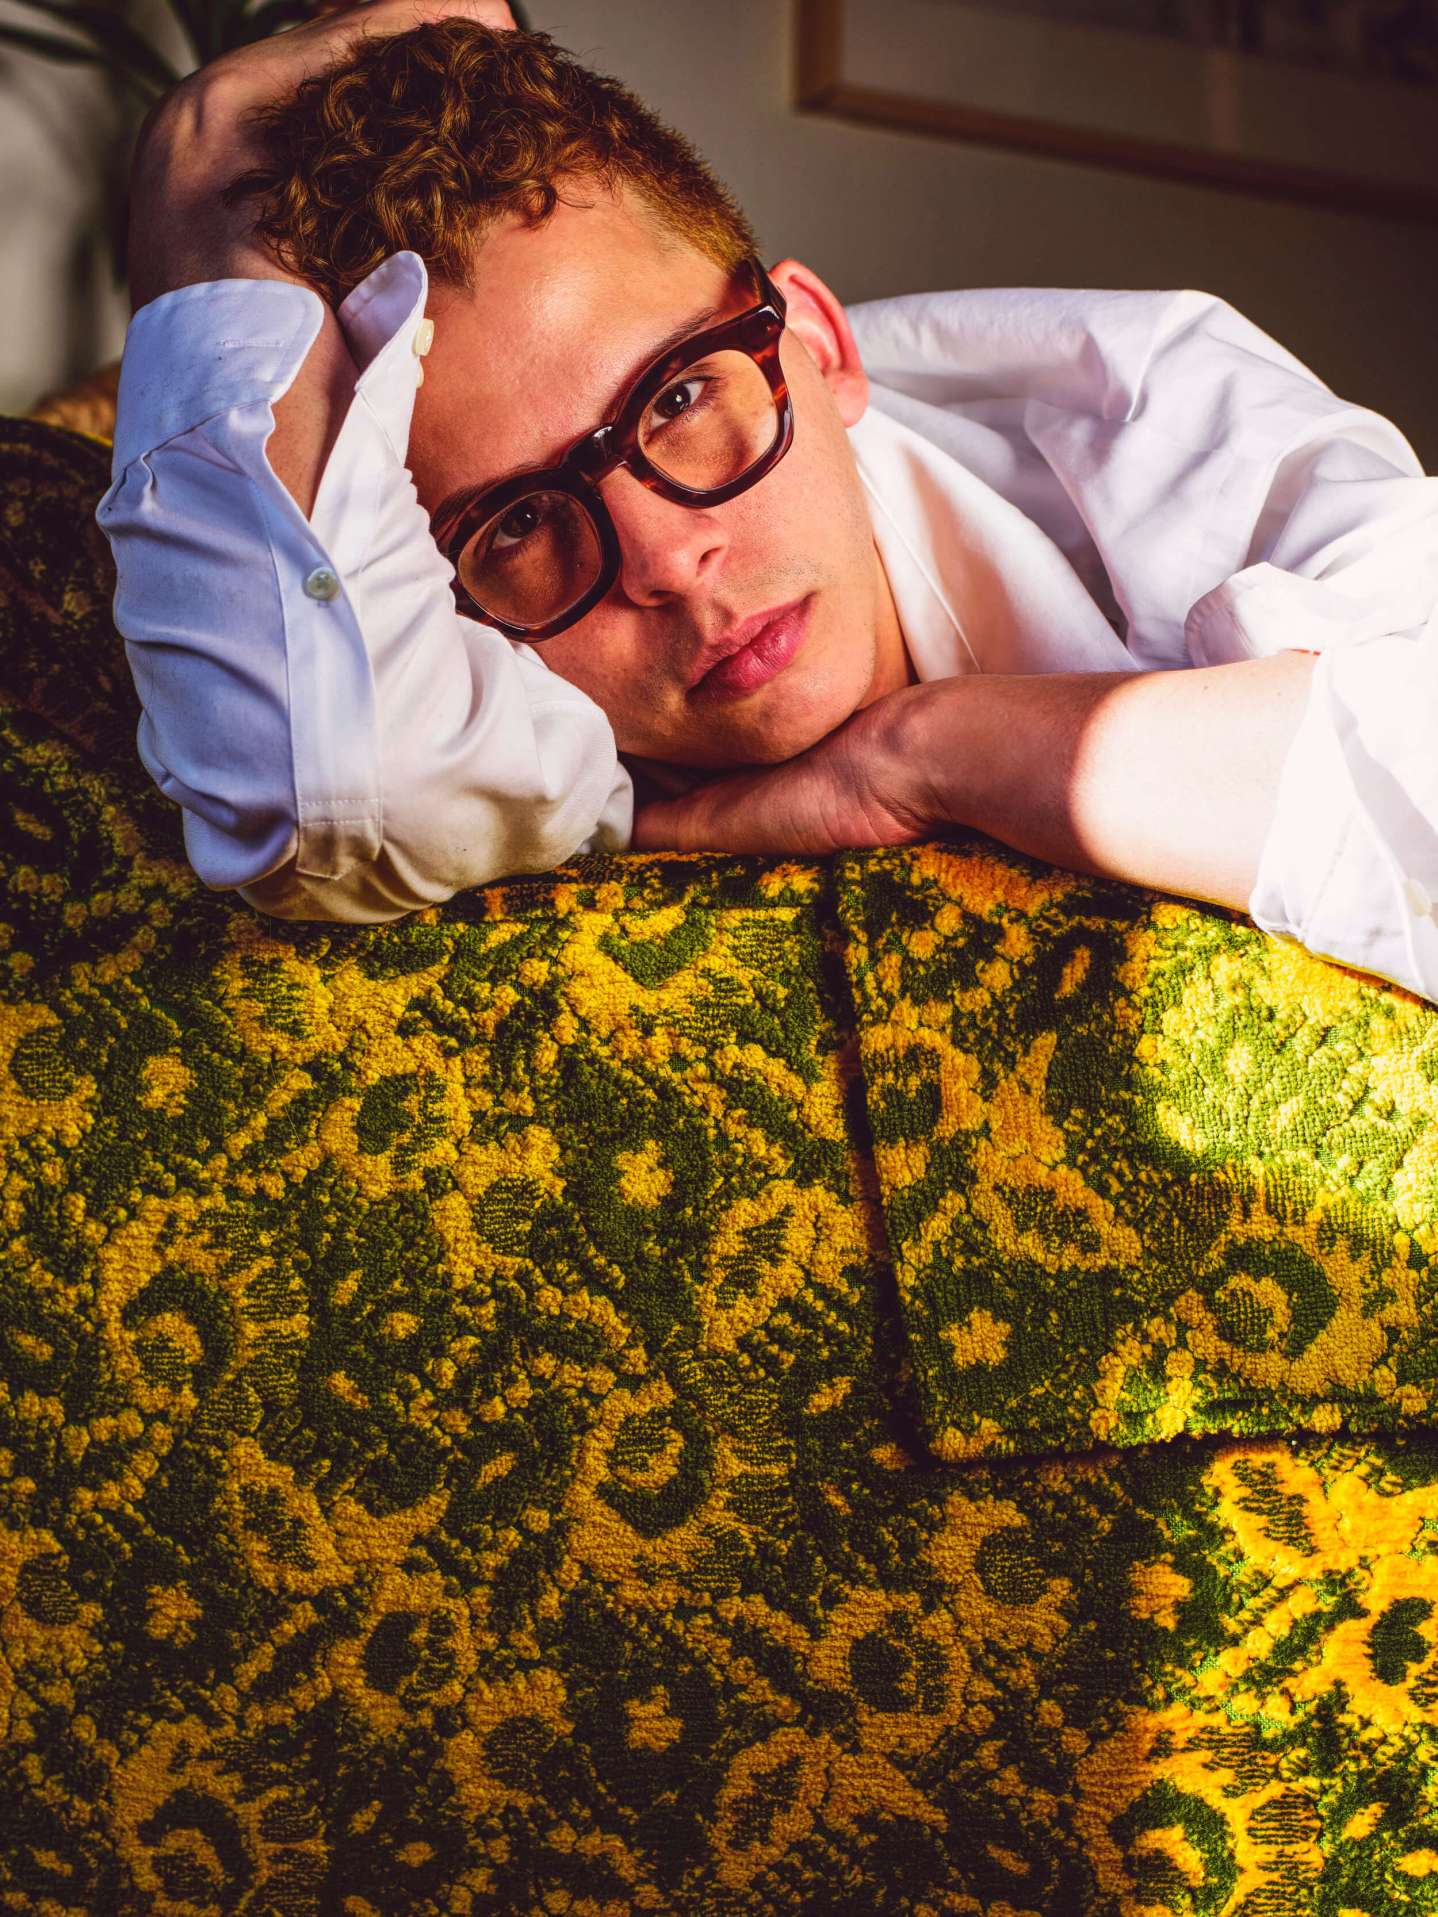 human subject resting on yellow and green couch